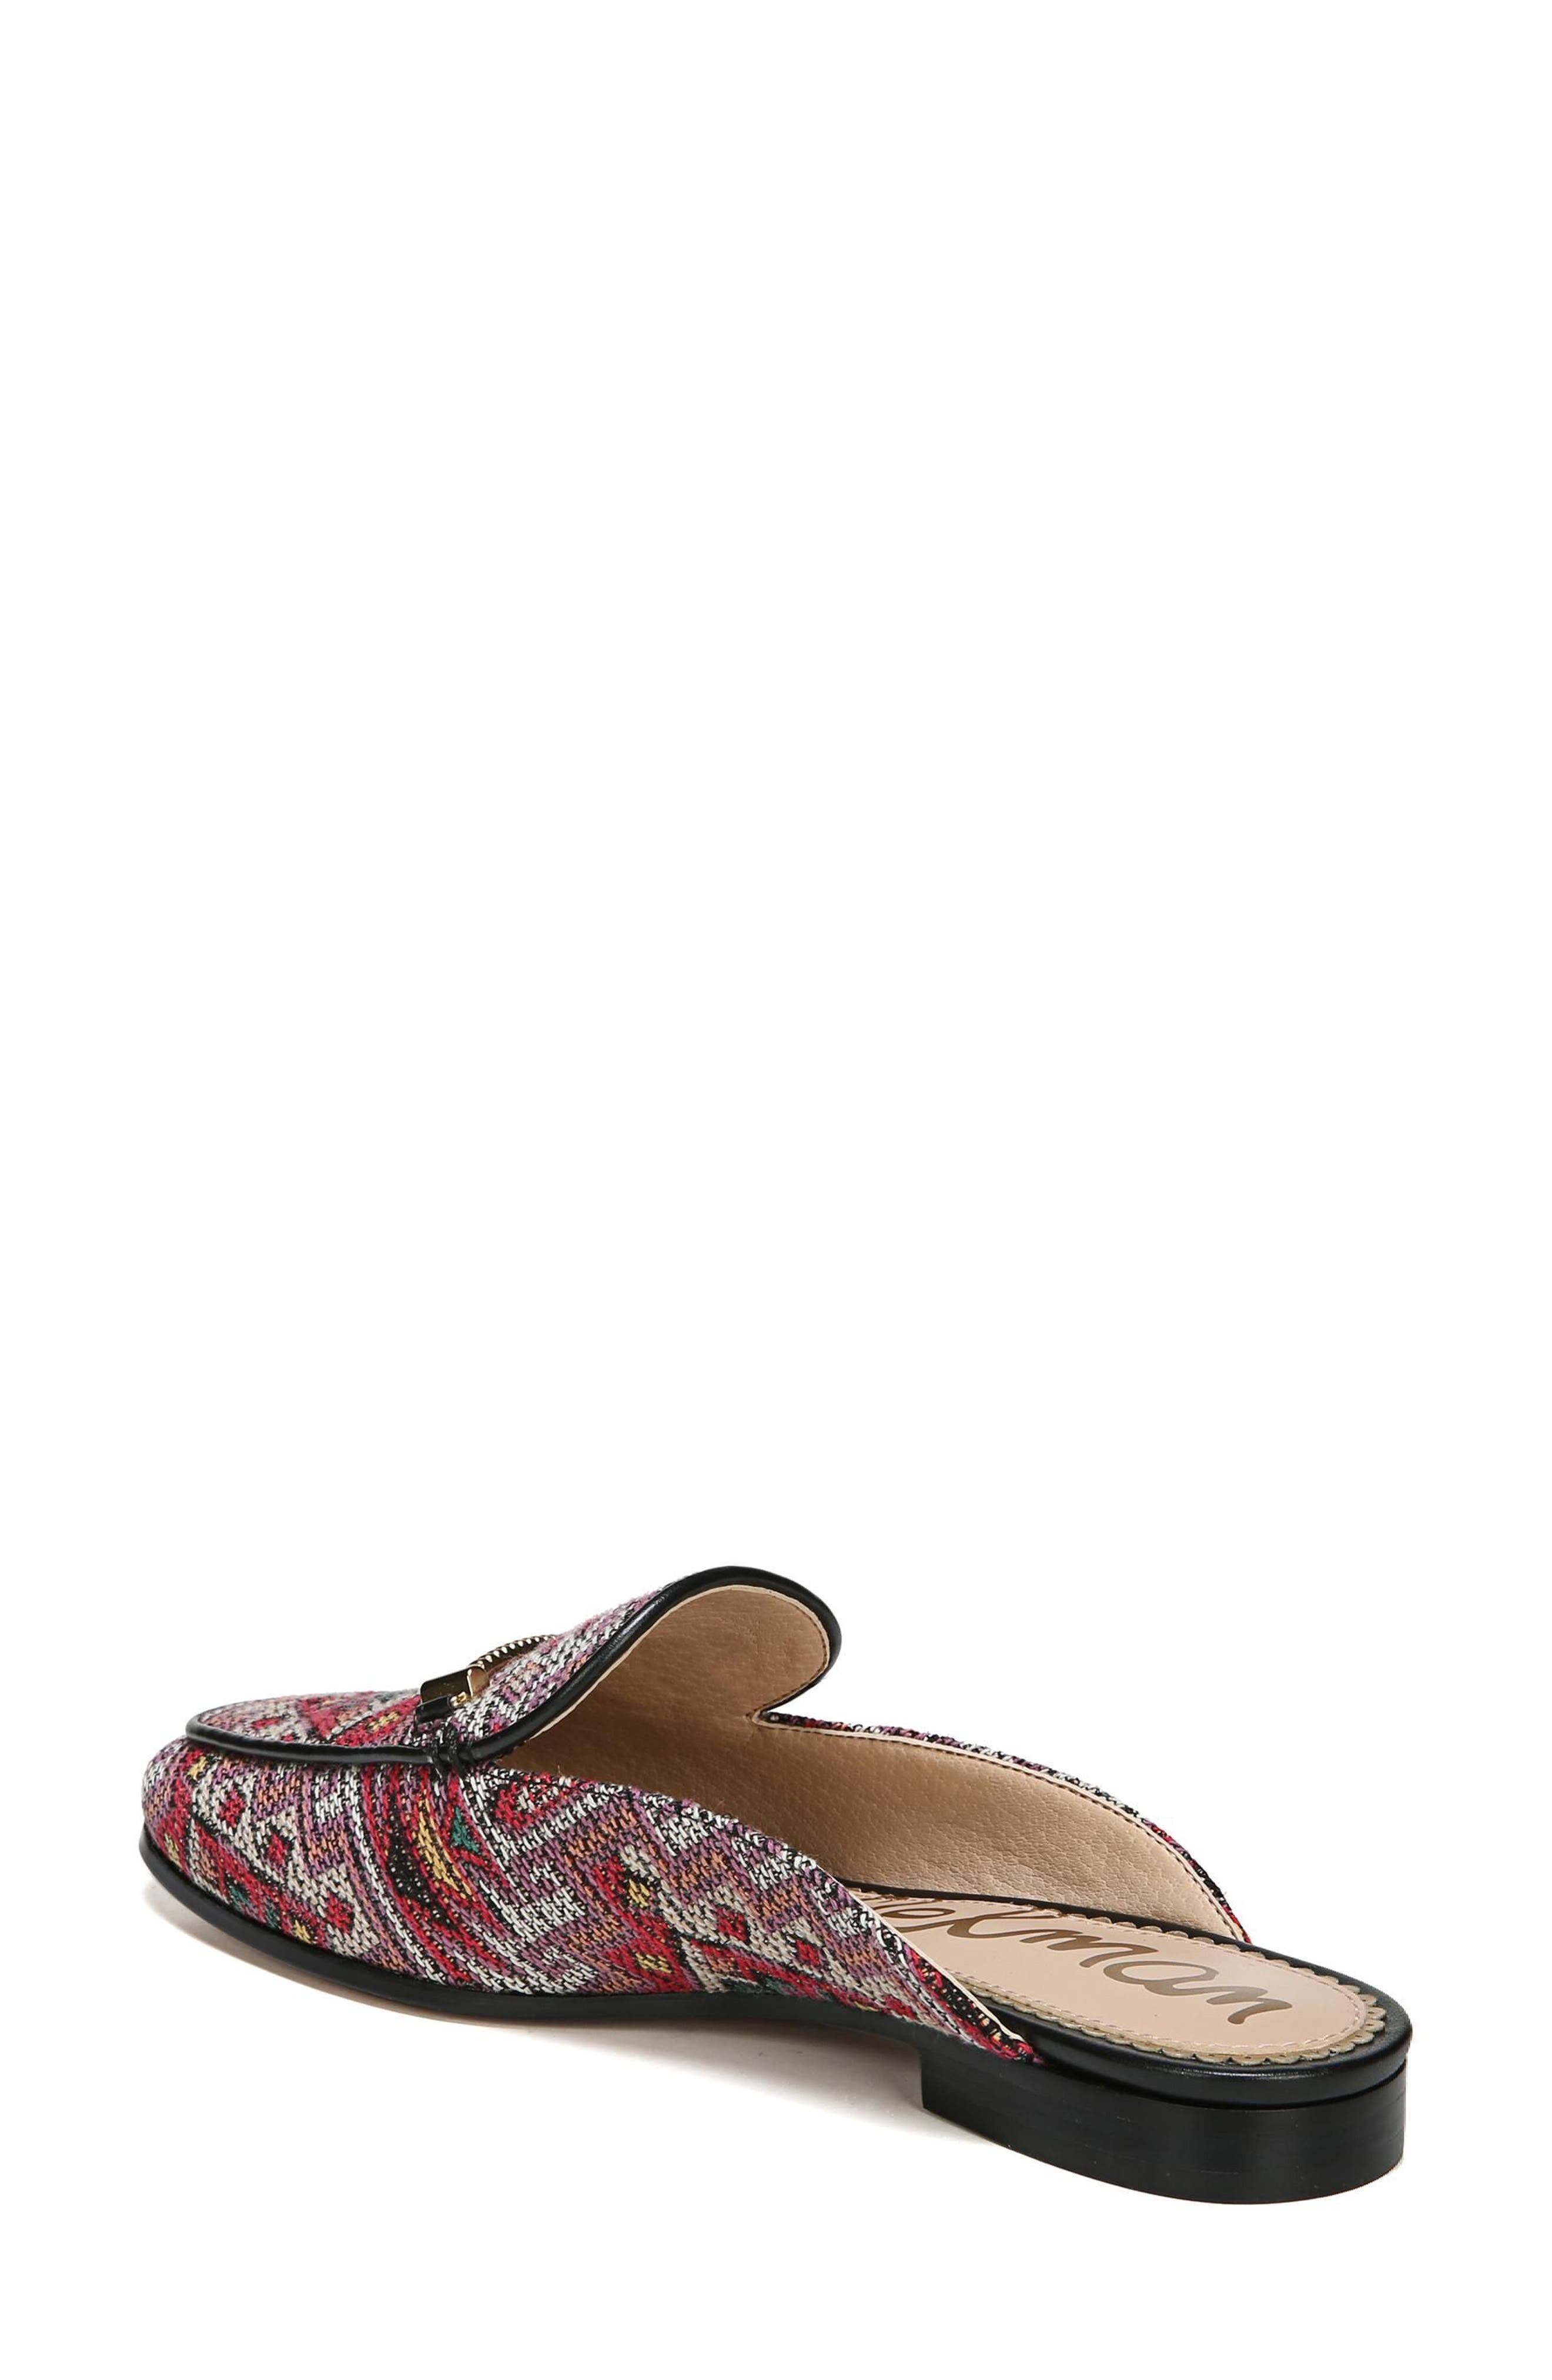 Laurna Mule,                             Alternate thumbnail 2, color,                             Red Multi Fabric